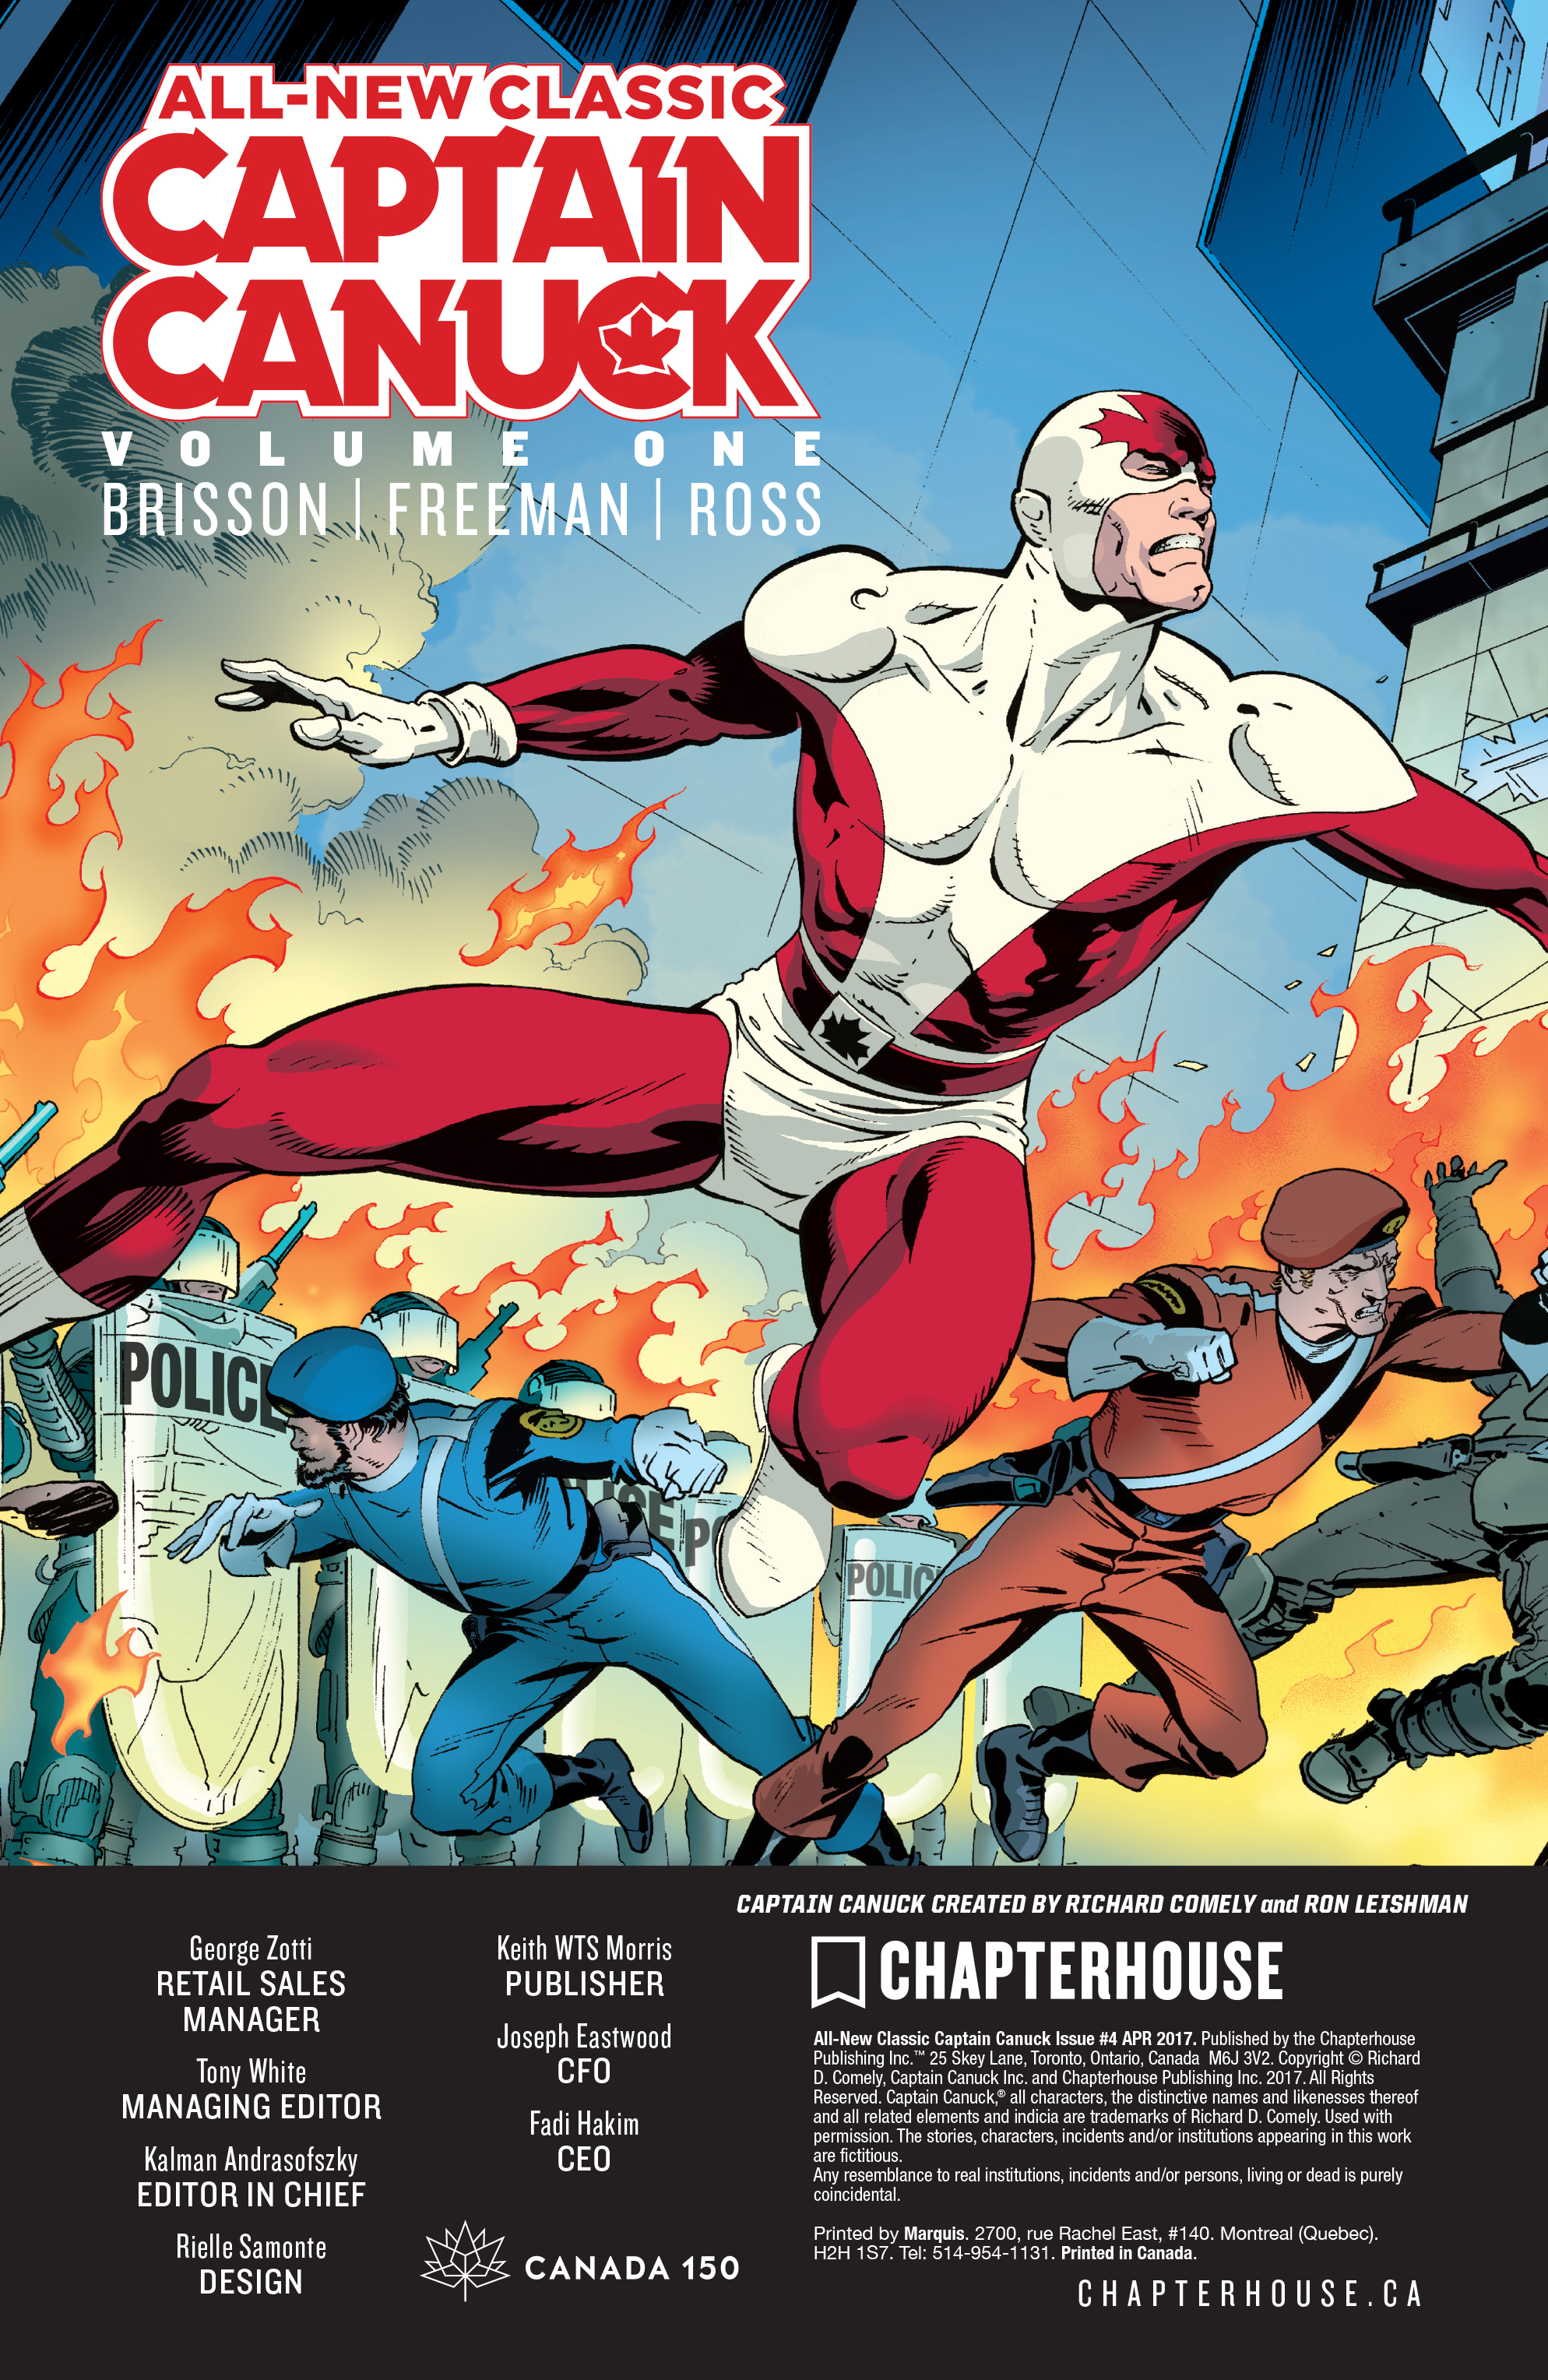 Read online All-New Classic Captain Canuck comic -  Issue #4 - 23